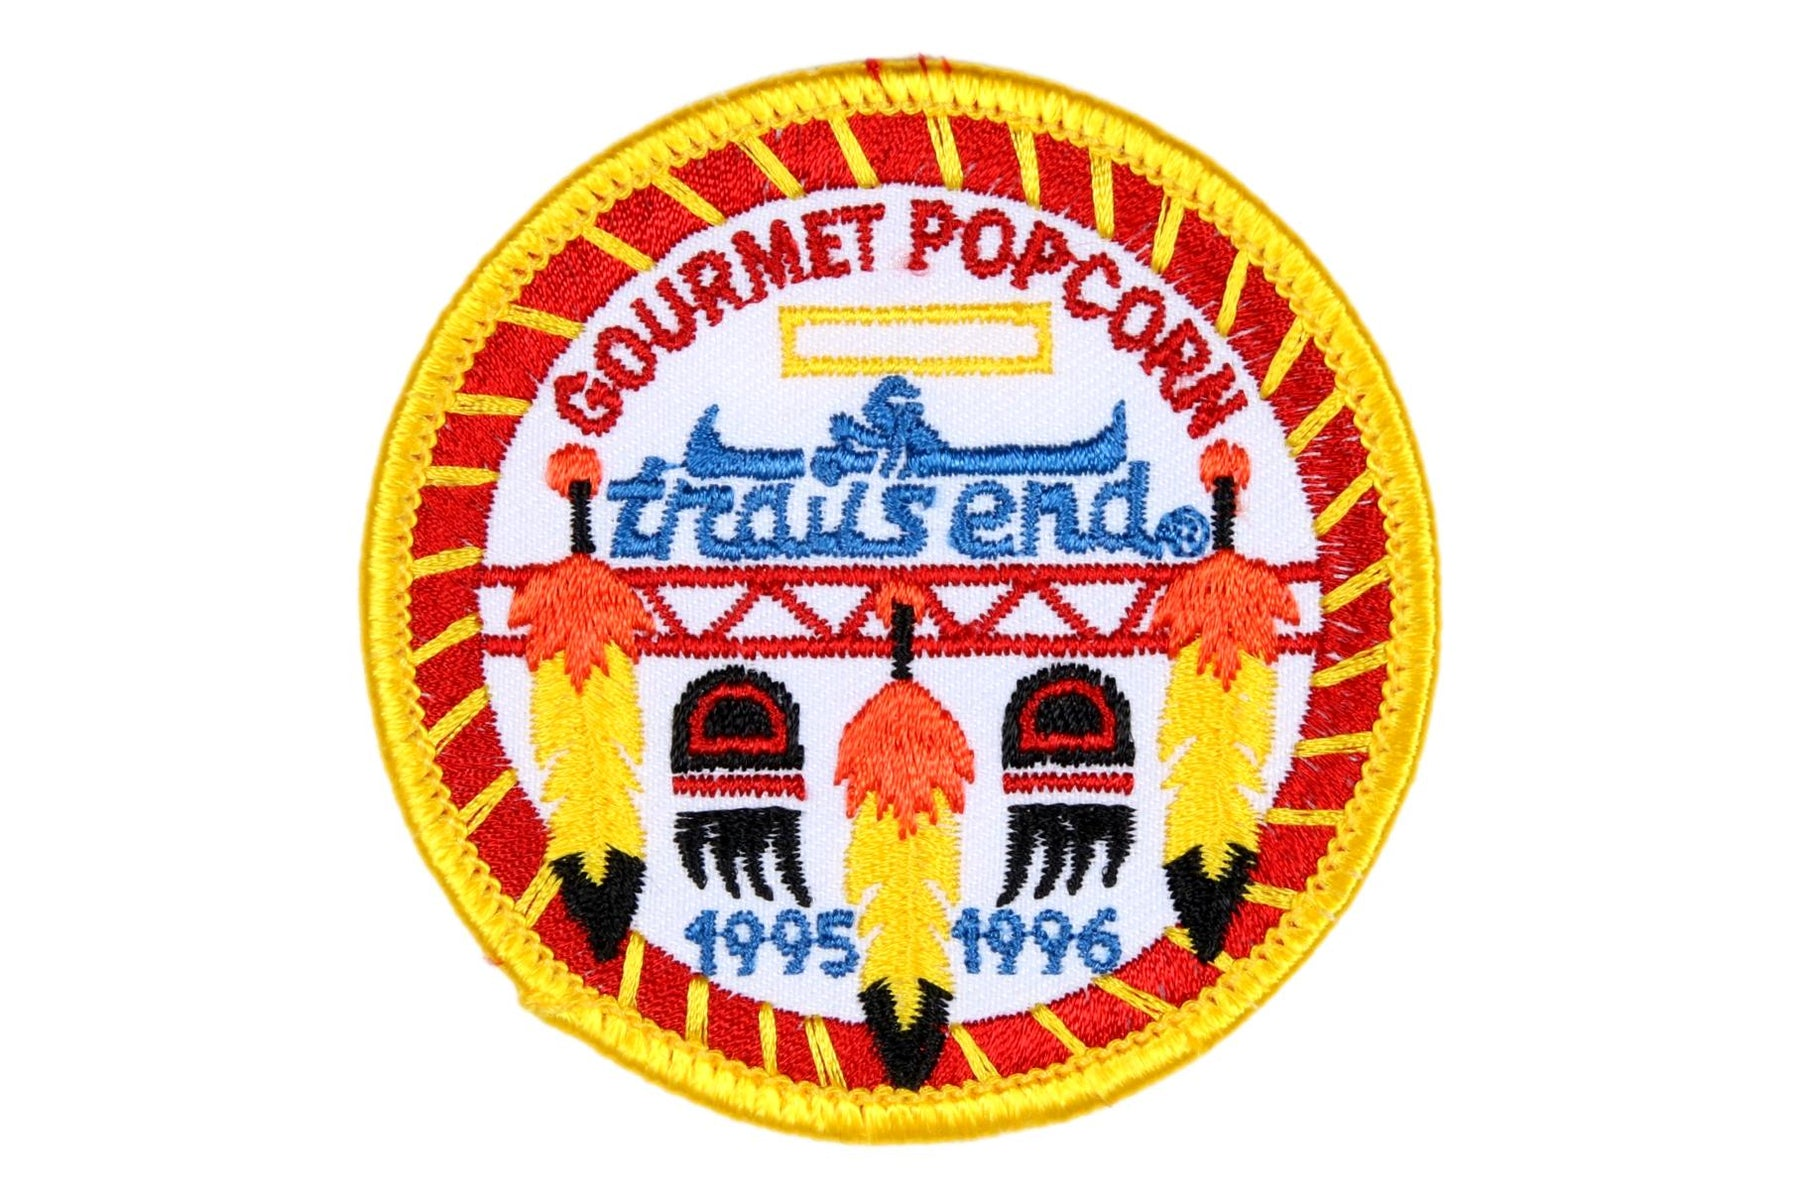 1995-96 Trail's End Popcorn Patch